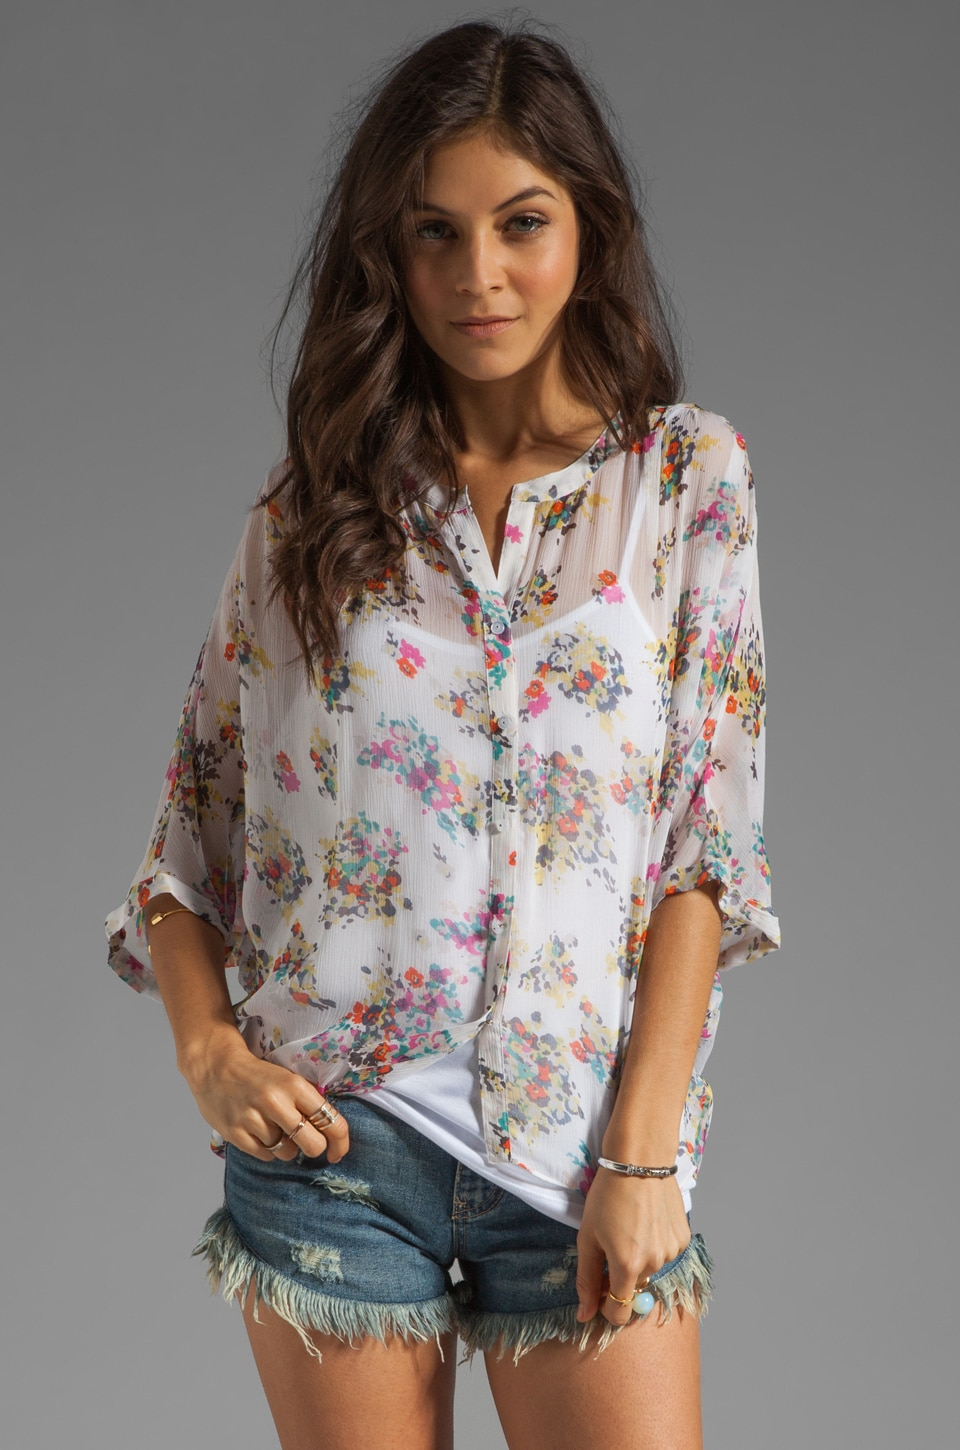 Ella Moss Citrus Floral Blouse in White